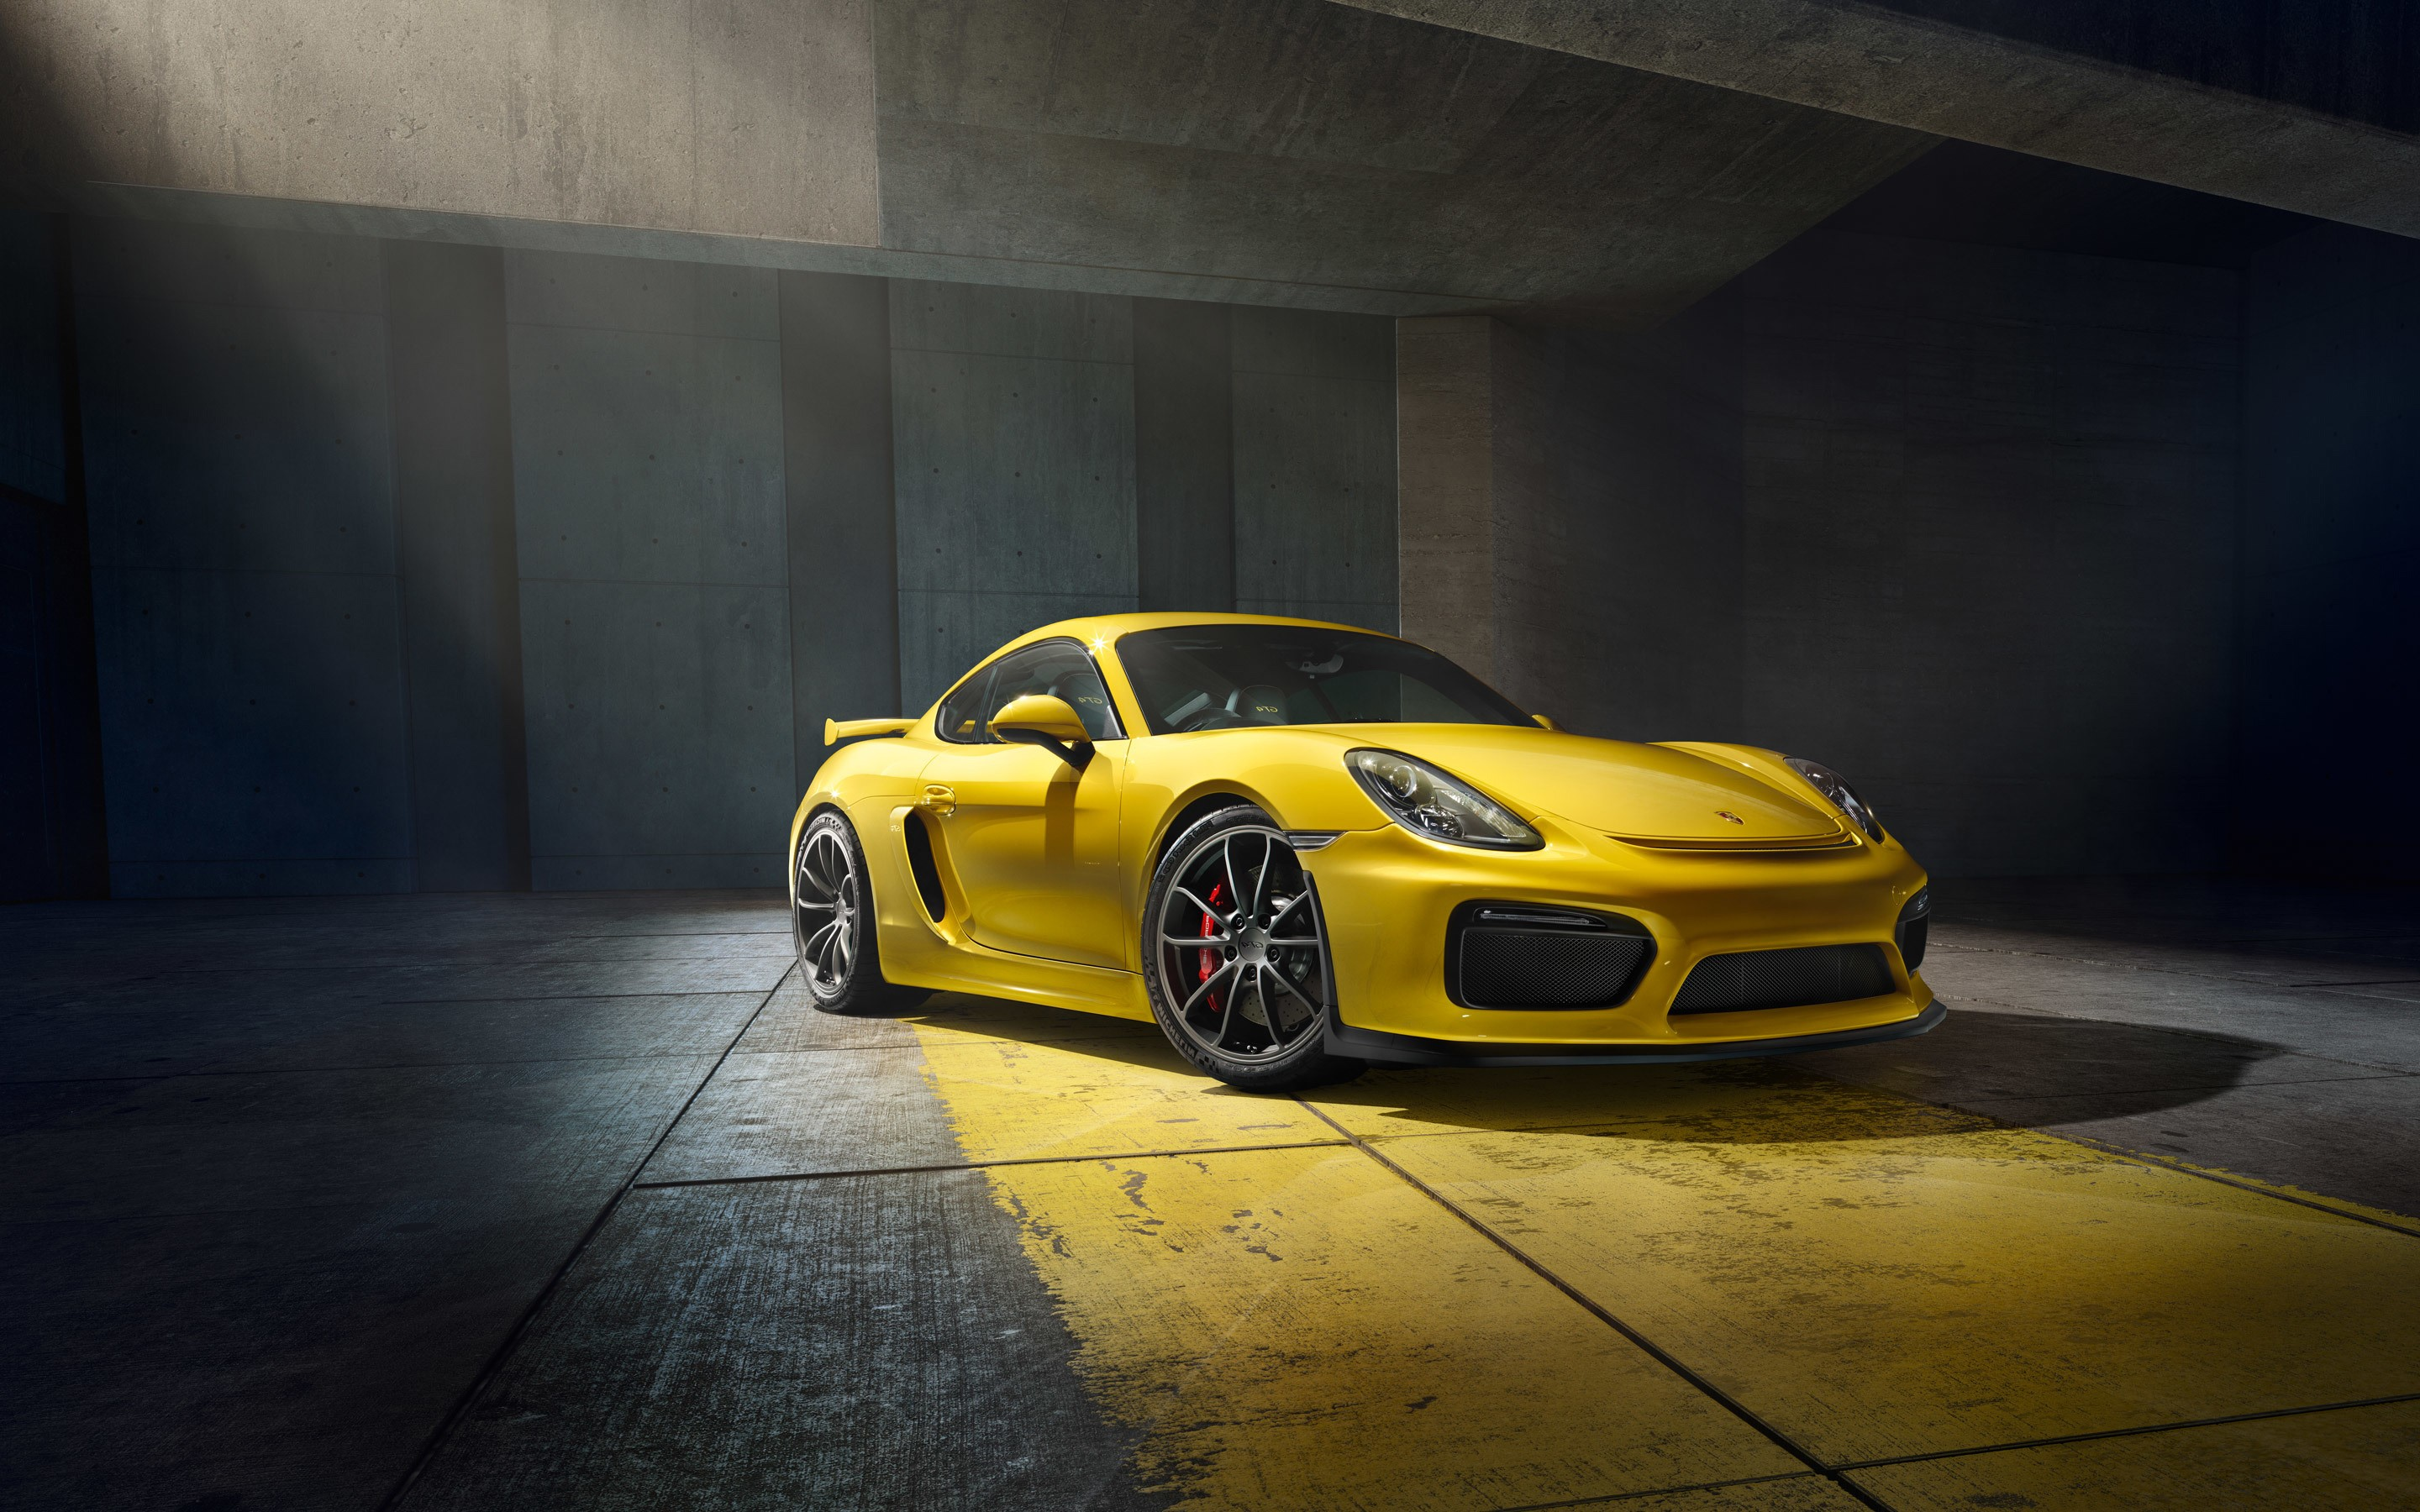 2880x1800 Porsche Cayman Gt4 Macbook Pro Retina Hd 4k Wallpapers Images Backgrounds Photos And Pictures